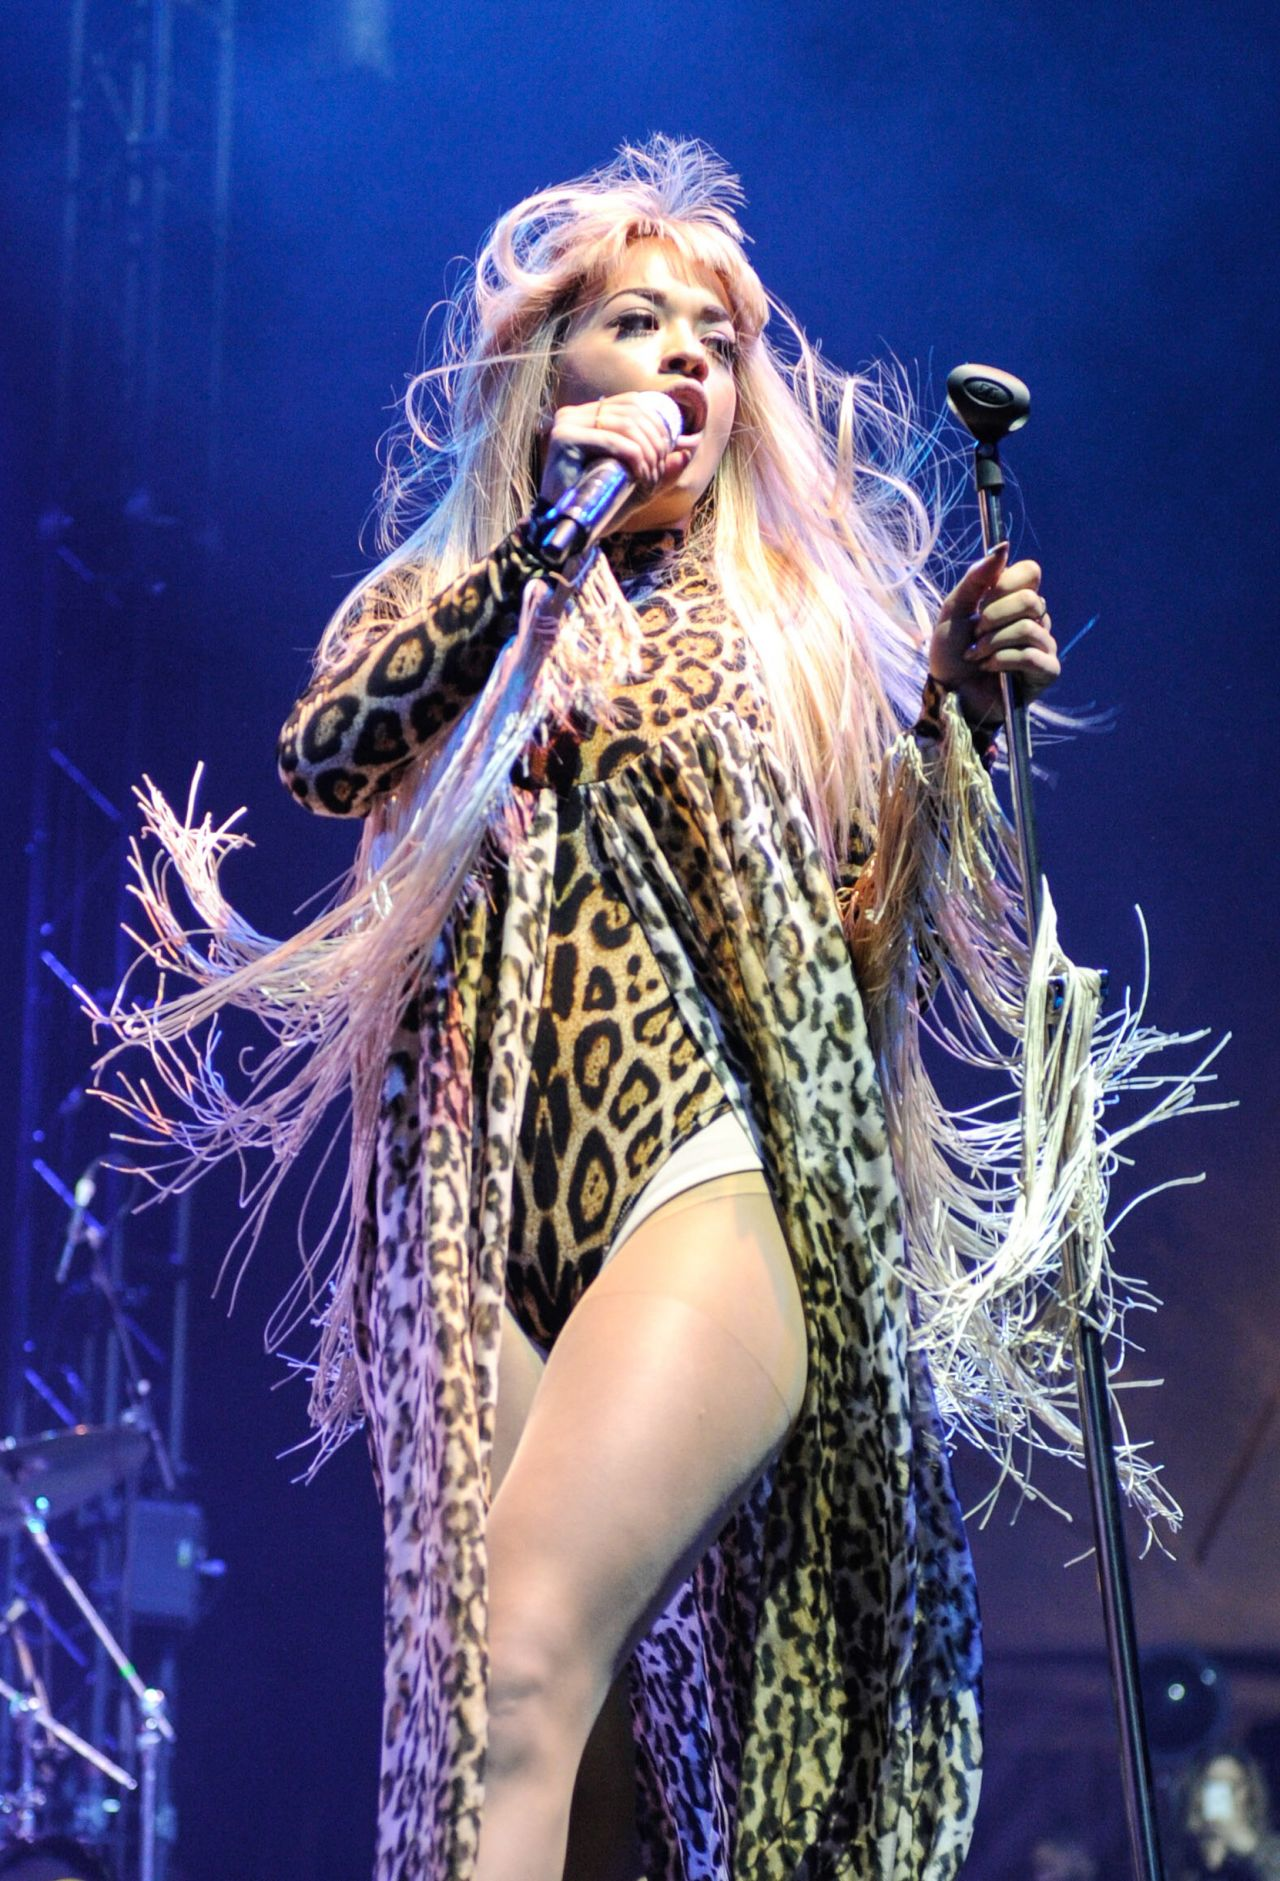 Rita Ora Performs at V Festival at Weston Park - August 2014